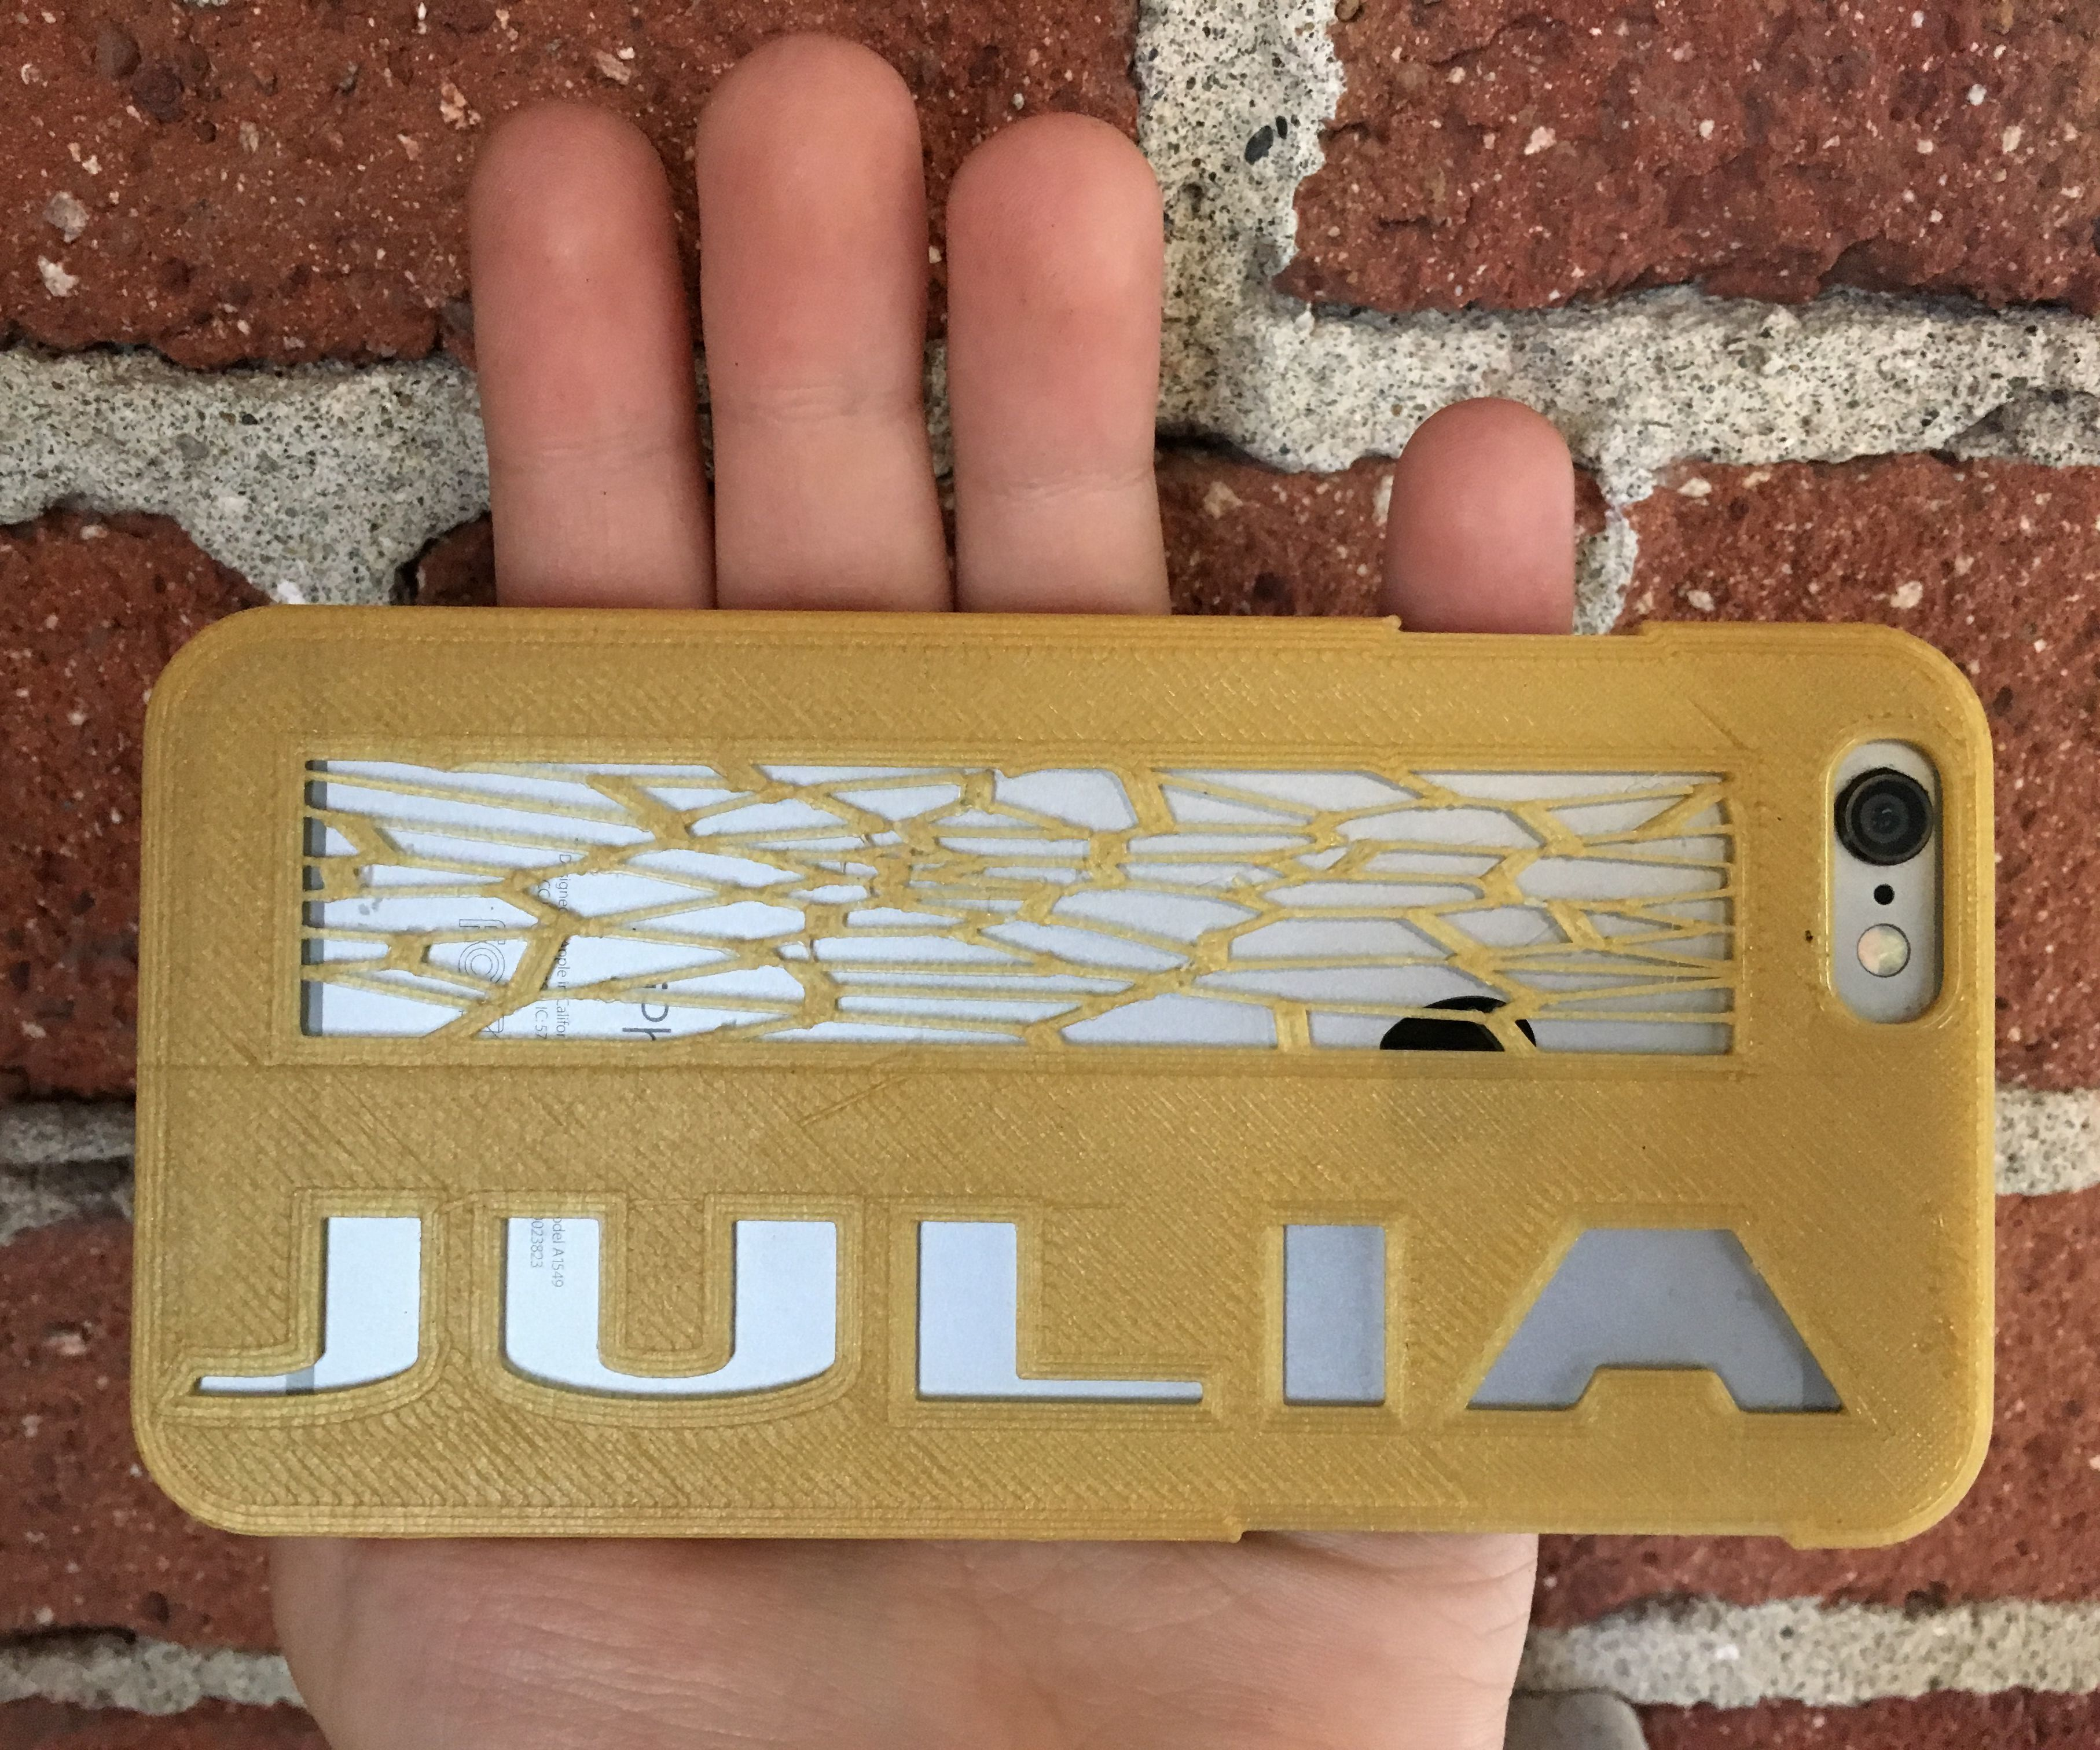 Design and 3D Print a Phone Case